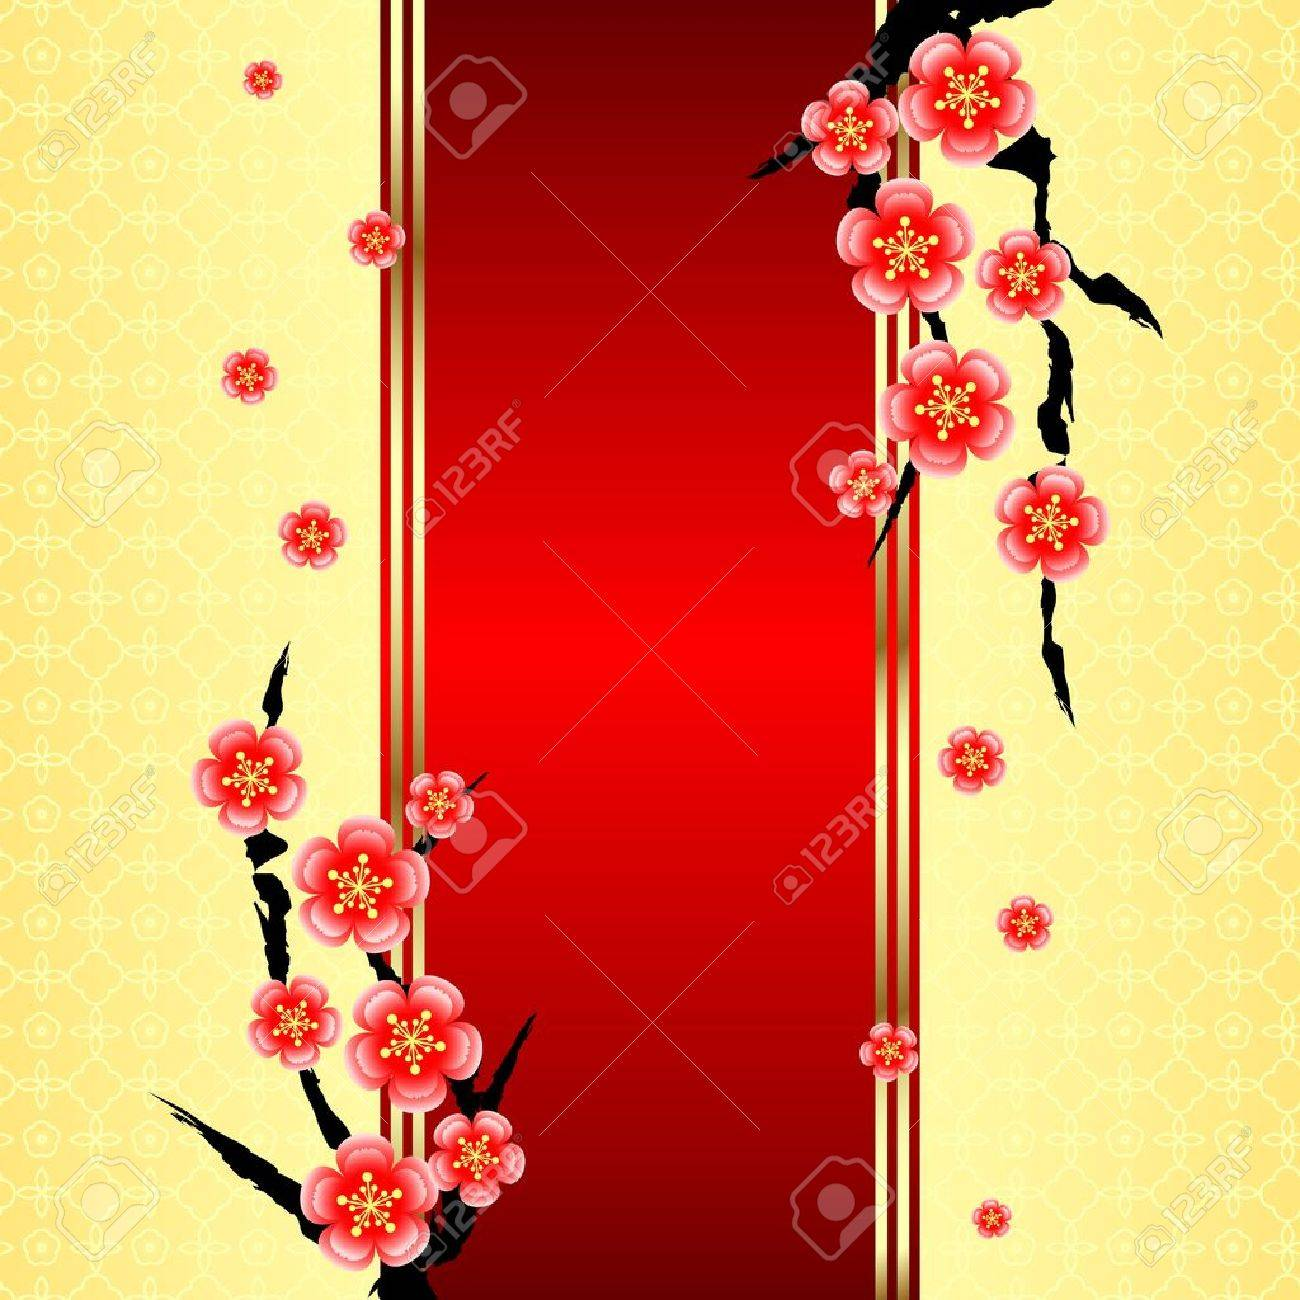 Chinese new year greeting card with cherry blossom royalty free chinese new year greeting card with cherry blossom stock vector 16792445 m4hsunfo